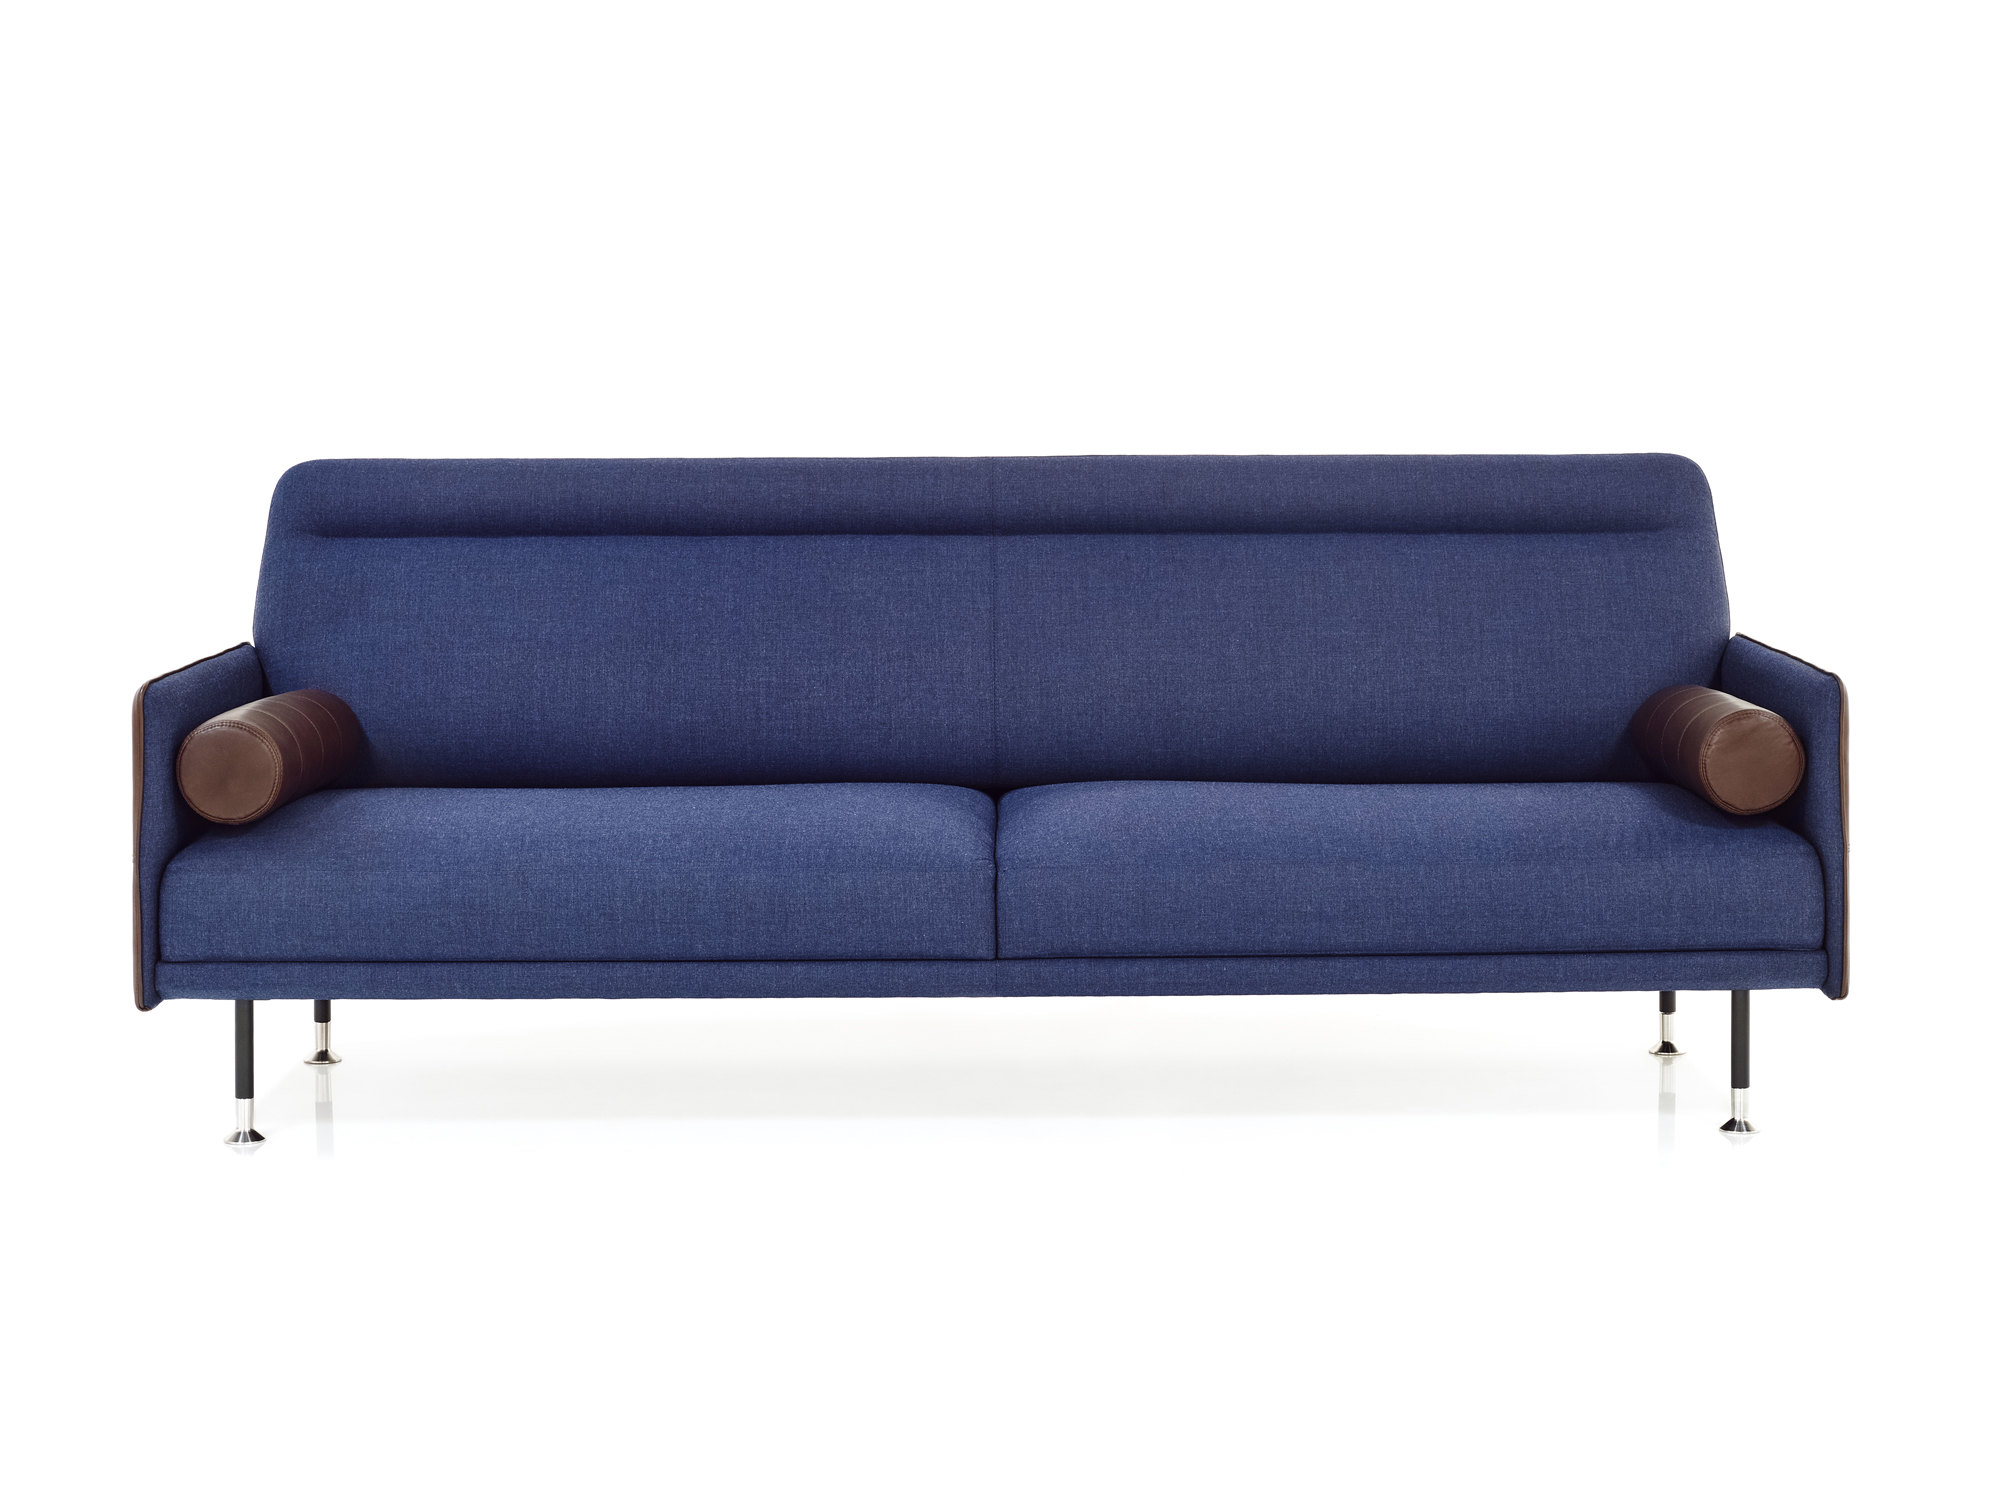 Melange Sofa For Wittmann - New project launched at IMM Cologne 2018